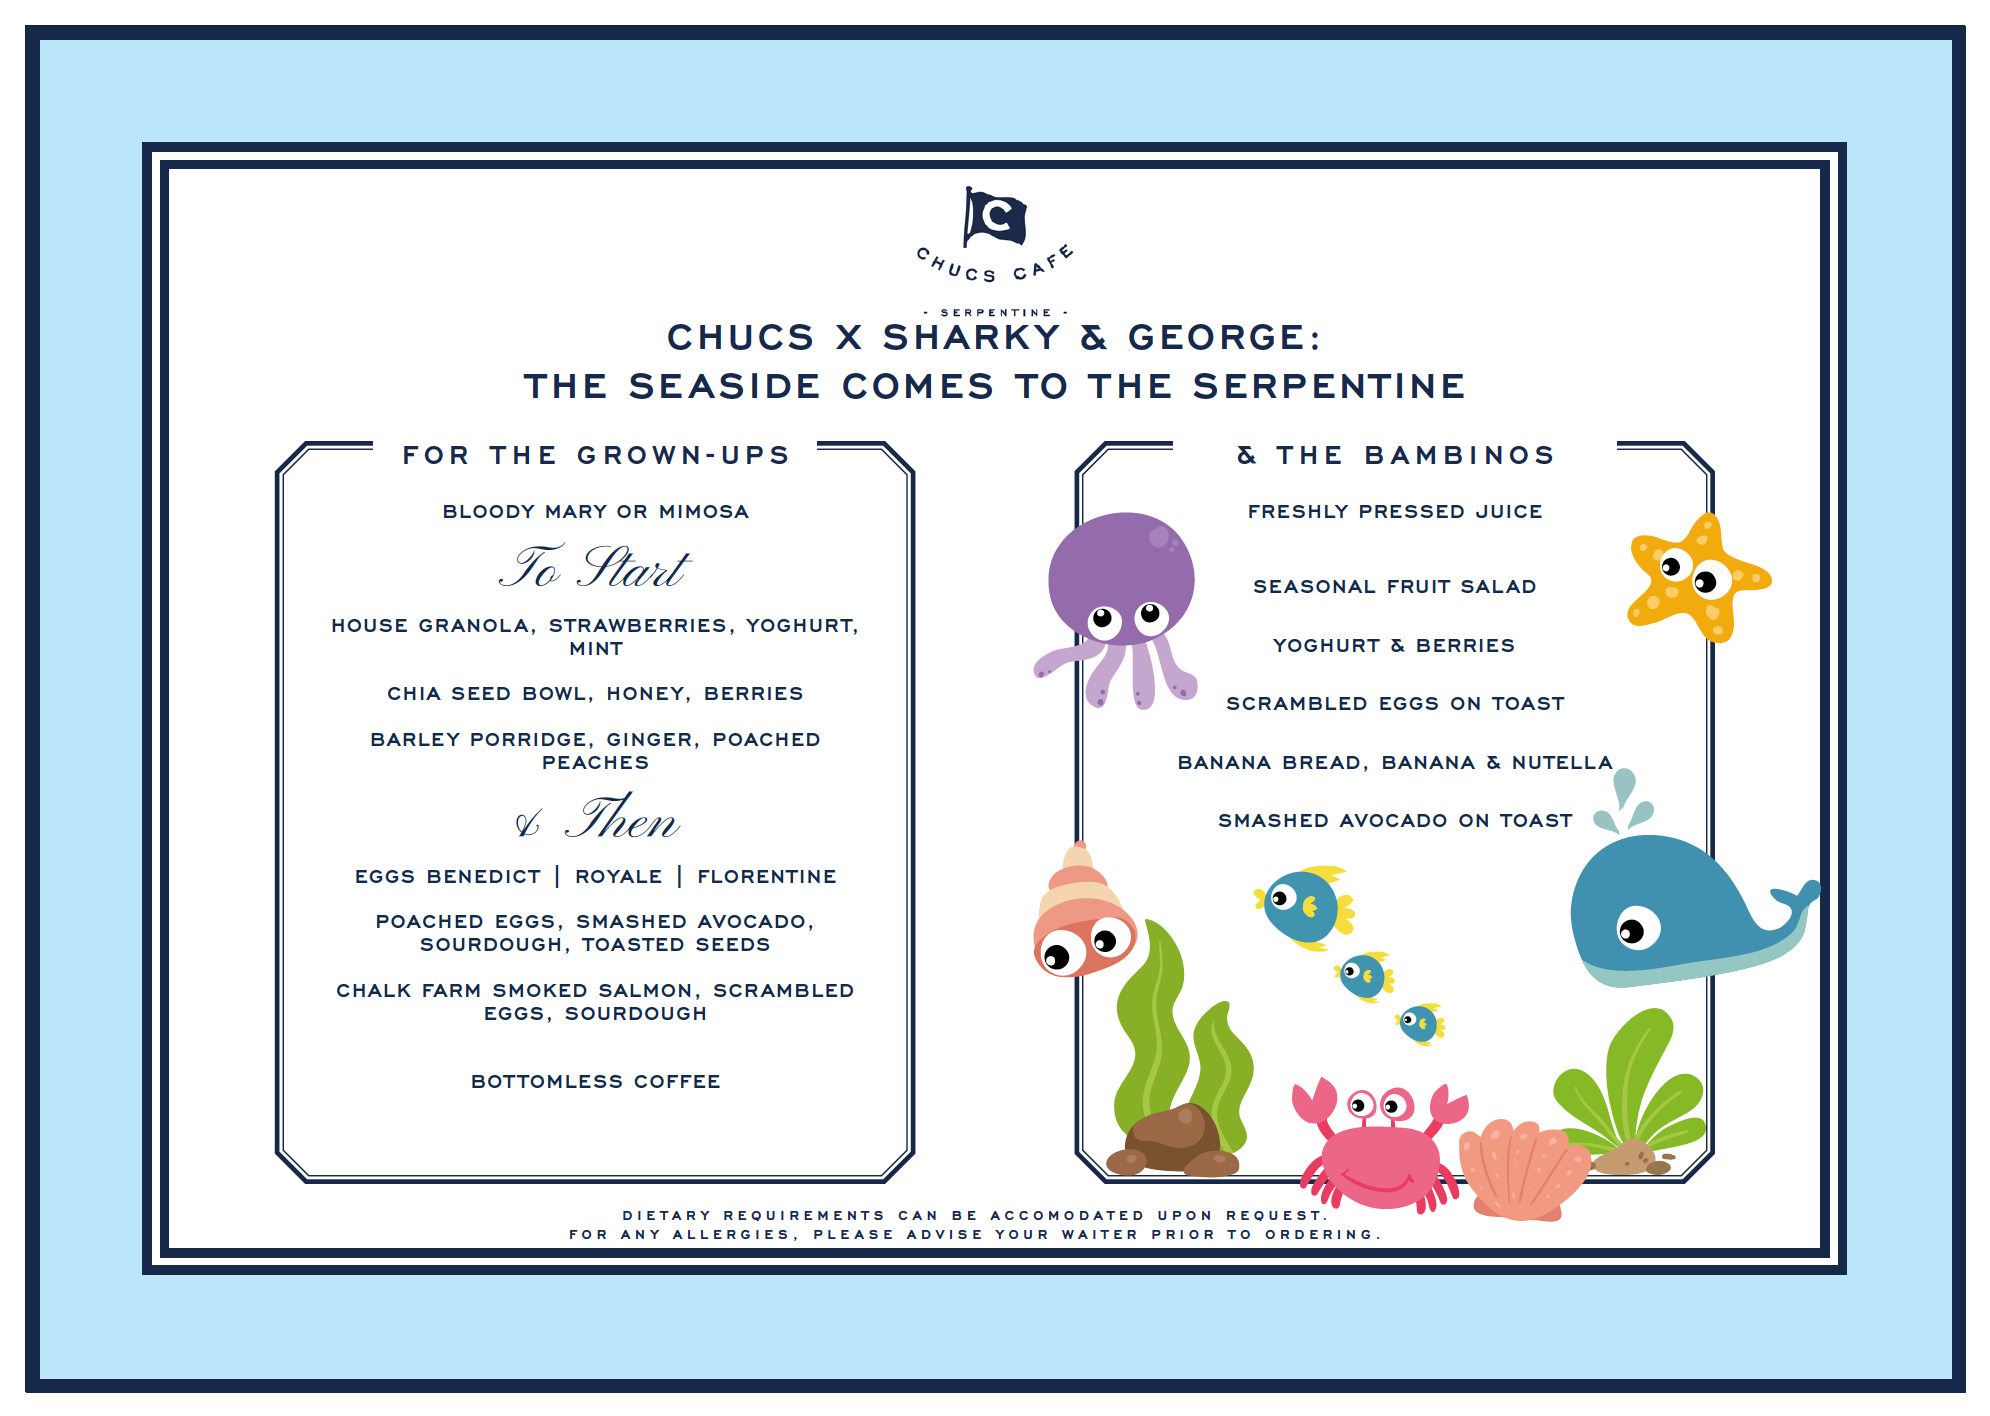 Chucs x Sharky & George: Bringing the Seaside to the Serpentine